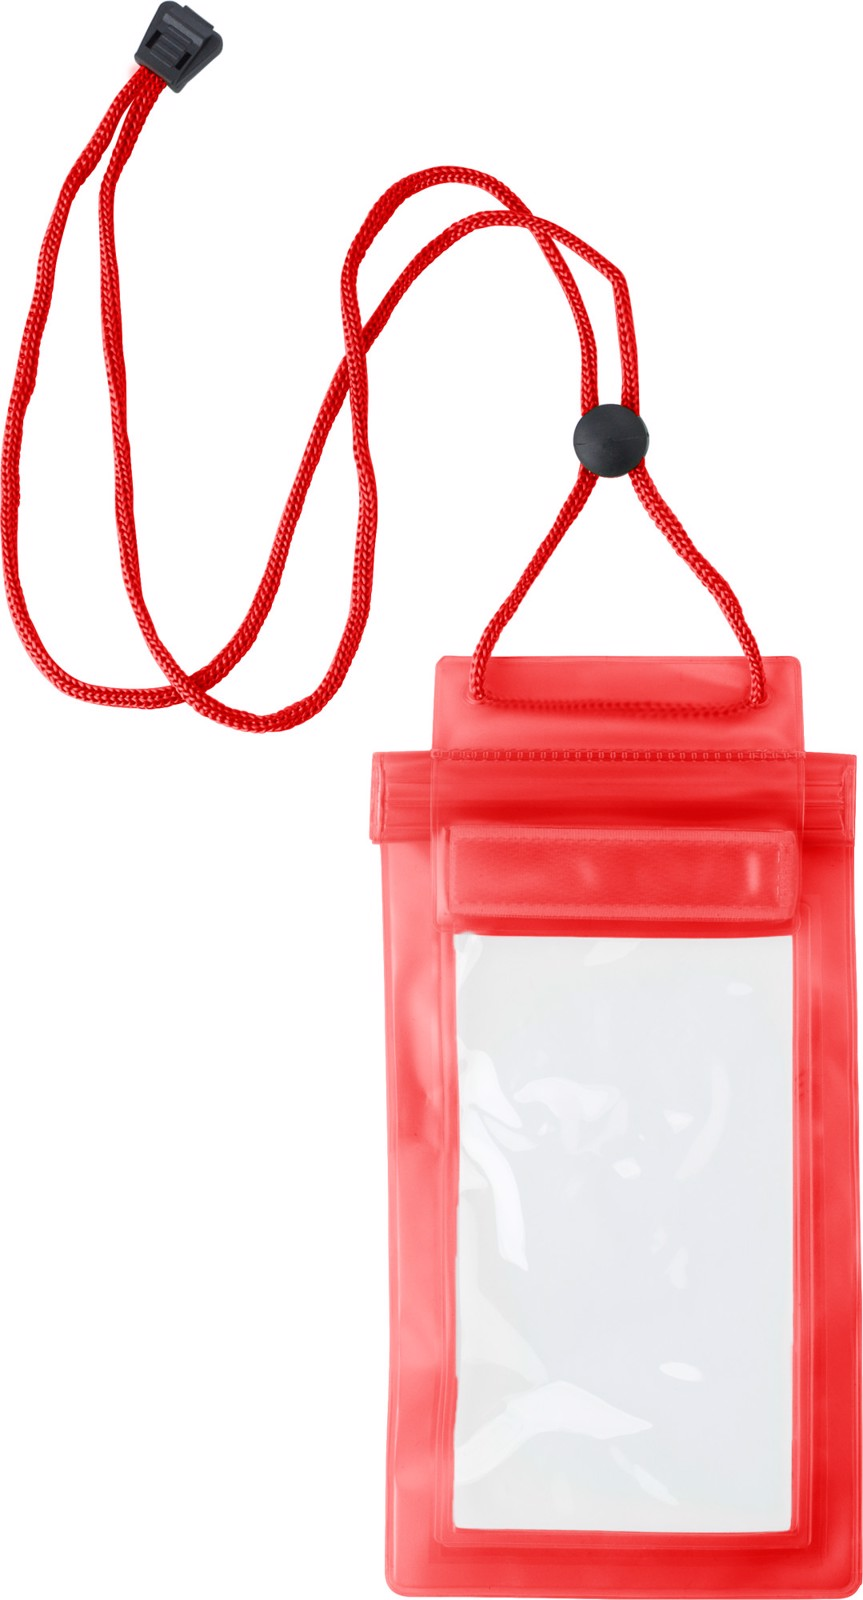 PVC pouch for mobile devices - Red